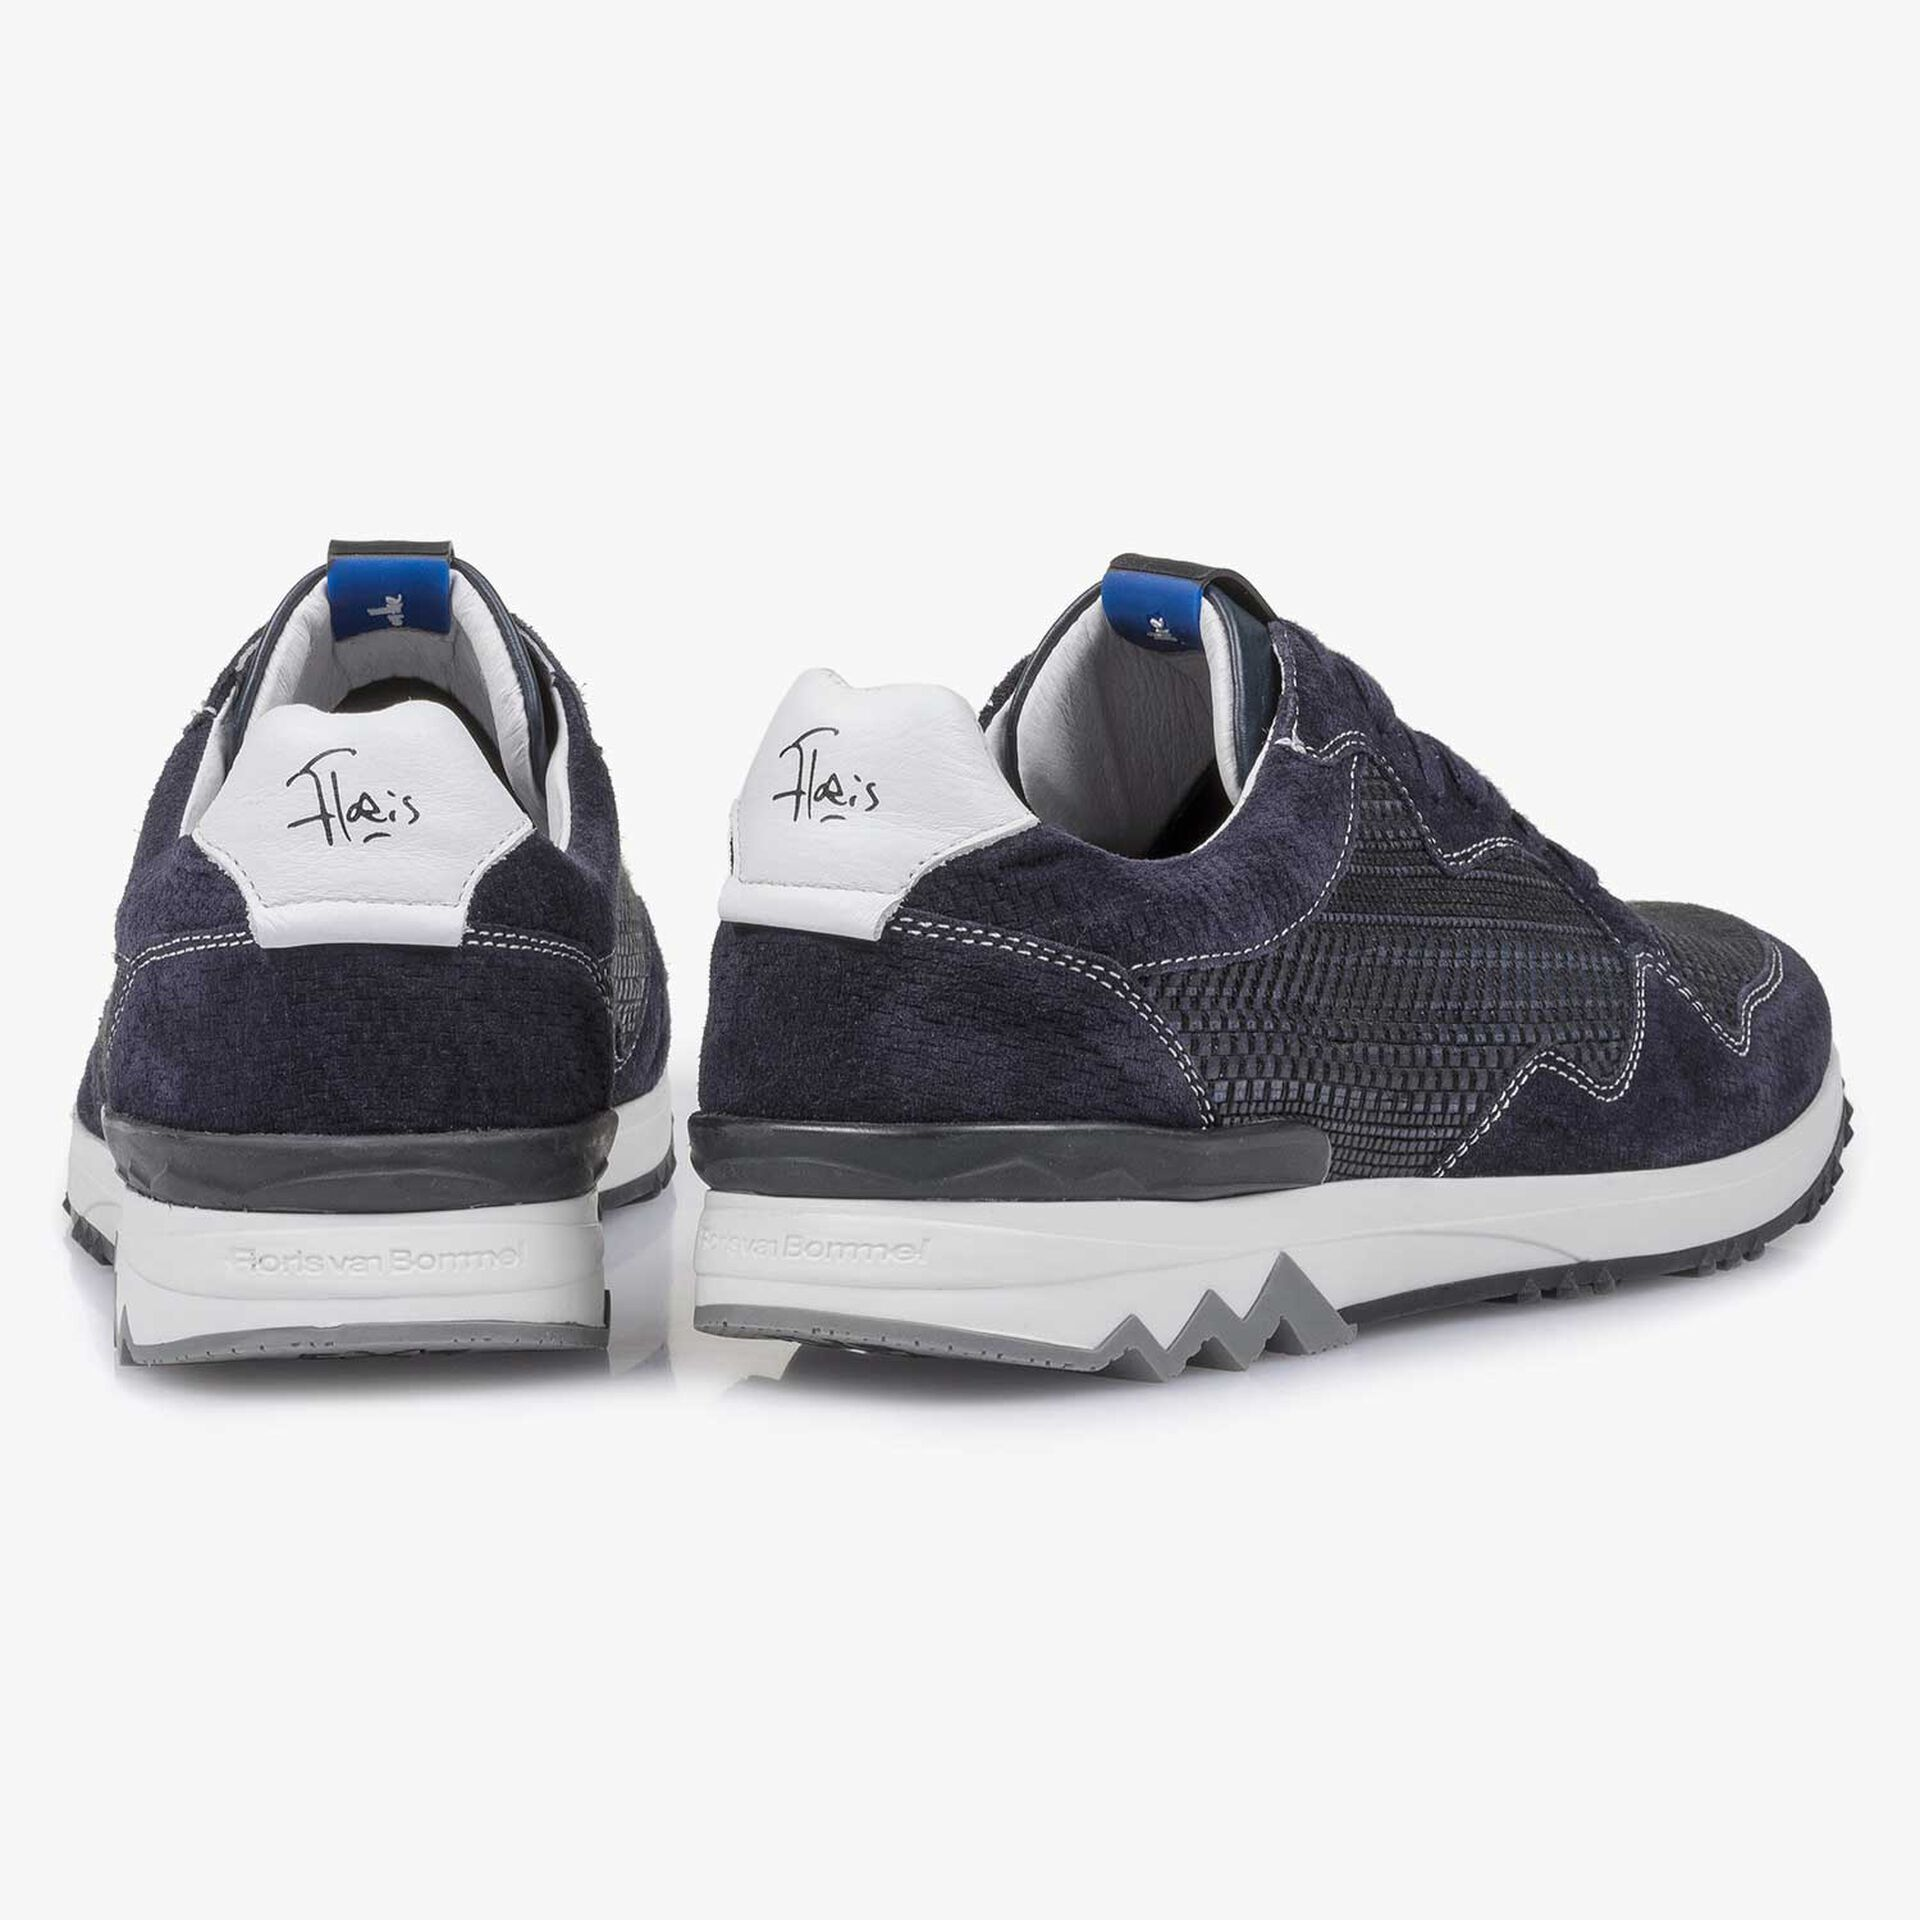 Dark blue suede leather sneaker with a pattern